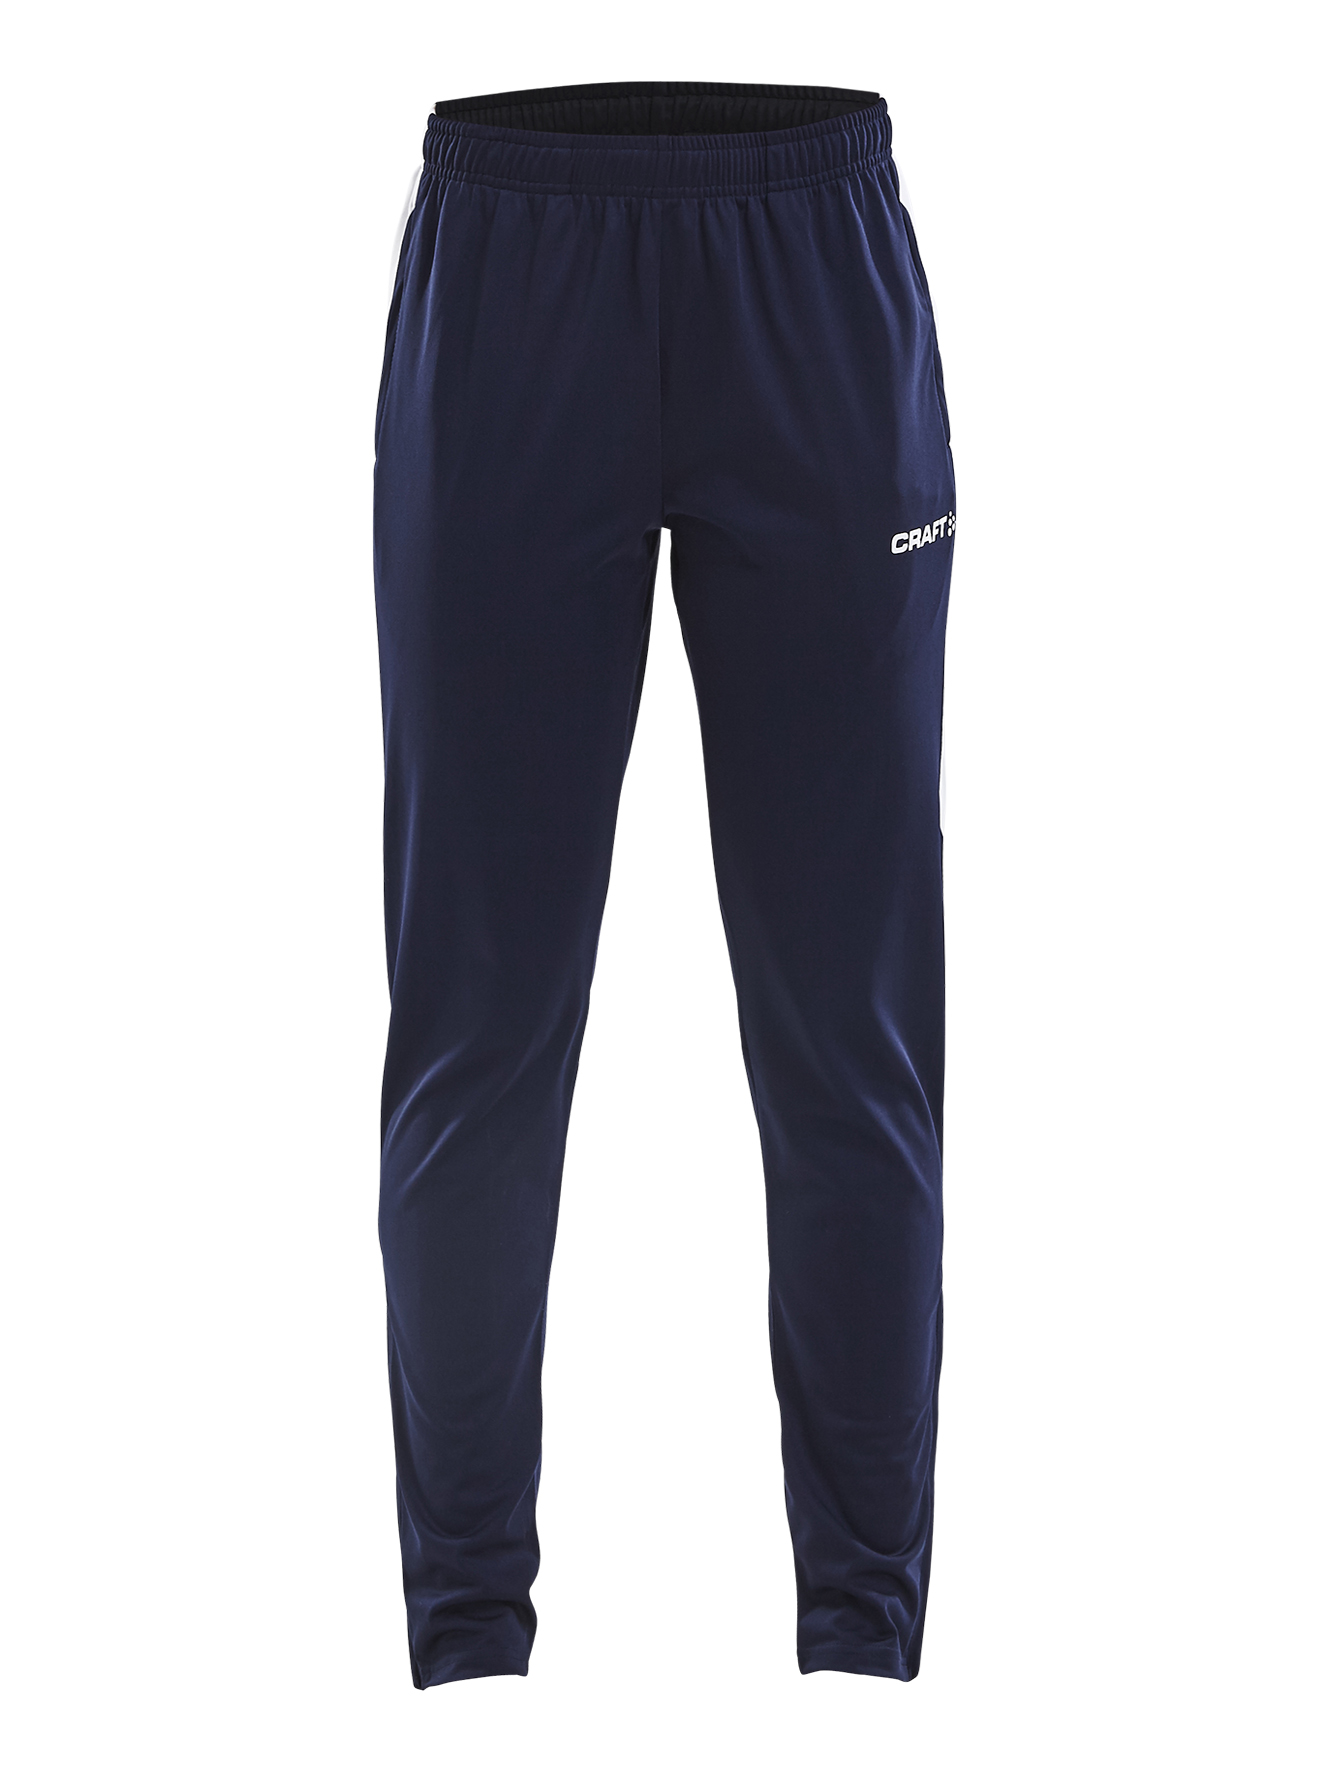 Craft PROGRESS Pant W NAVY/WHITE